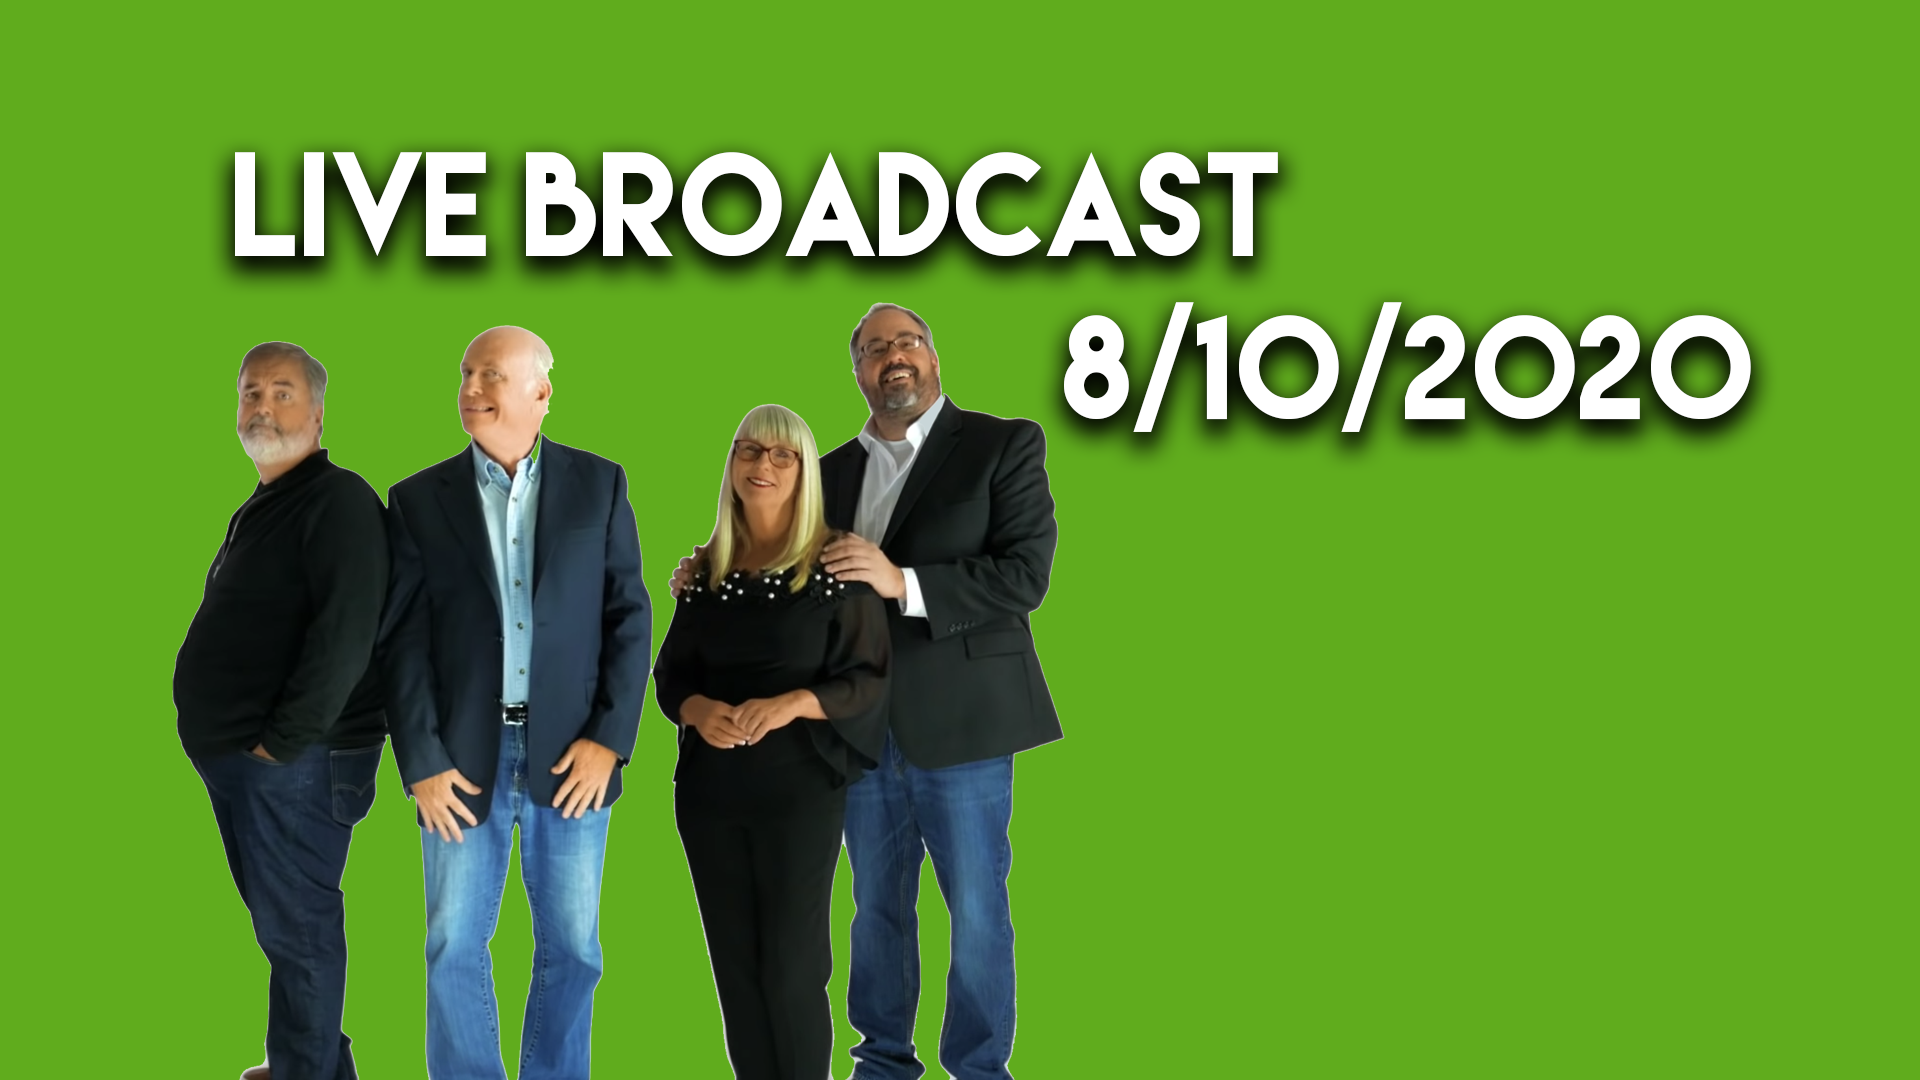 Watch August 10th's Show Live